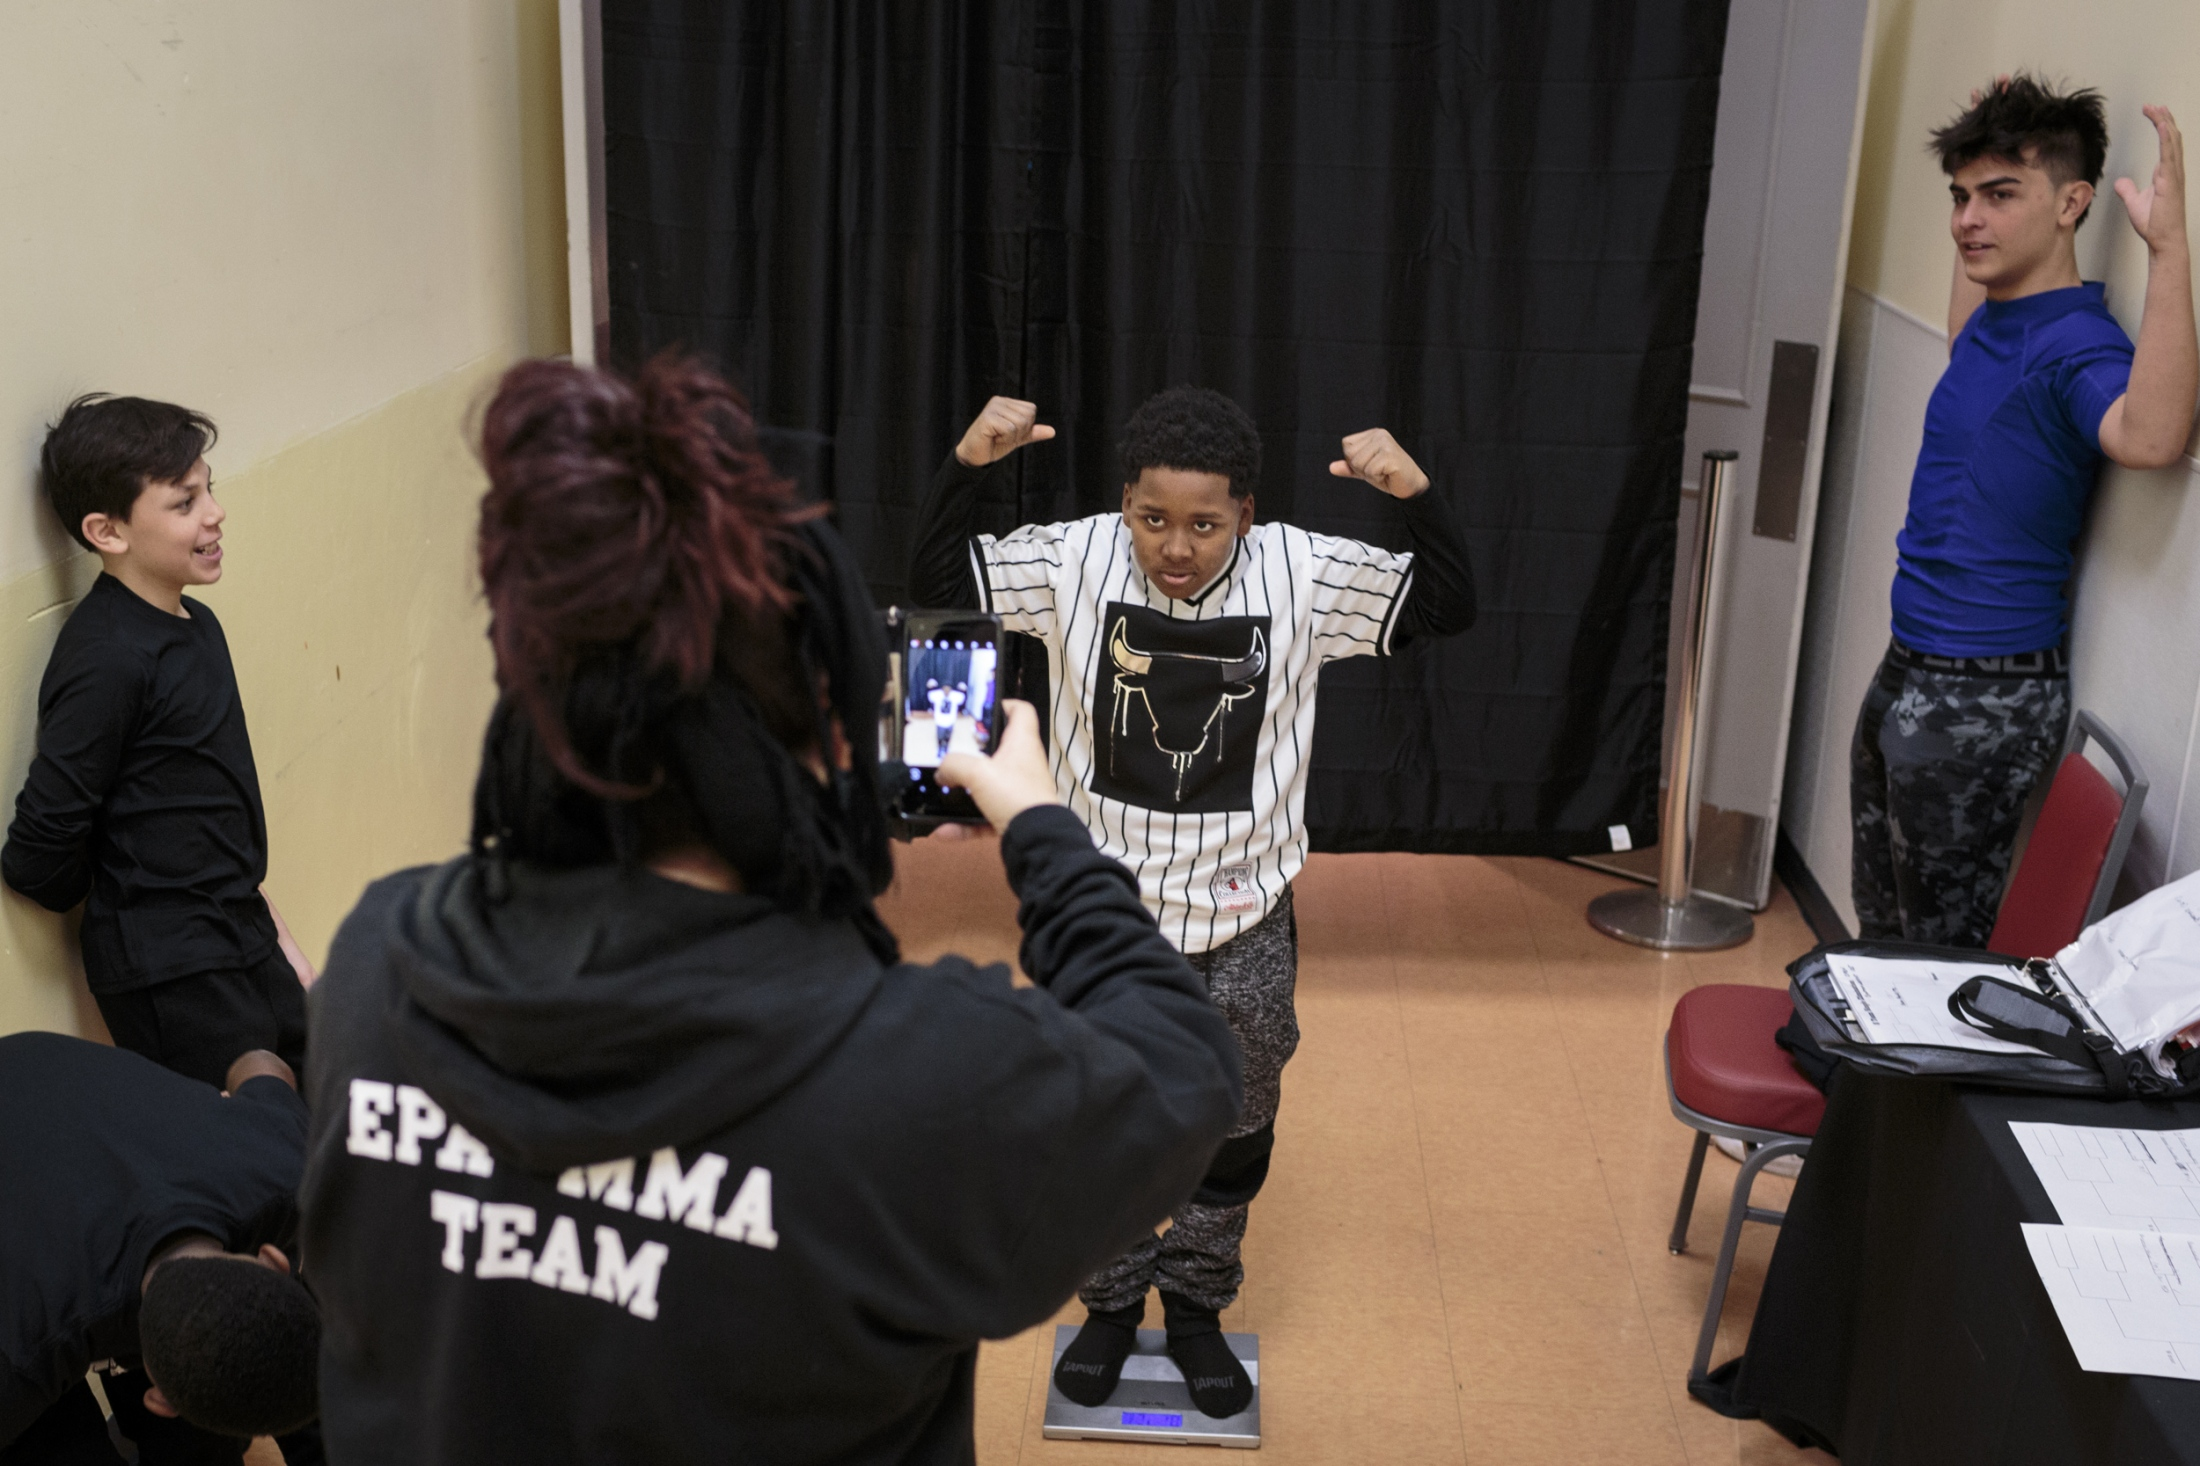 Coach Audra Saldana takes photos of Brian Owens, 11, middle, posing on a scale after his weigh in before the U.S. Open Youth National at Isle of Capri in Boonville, Missouri.